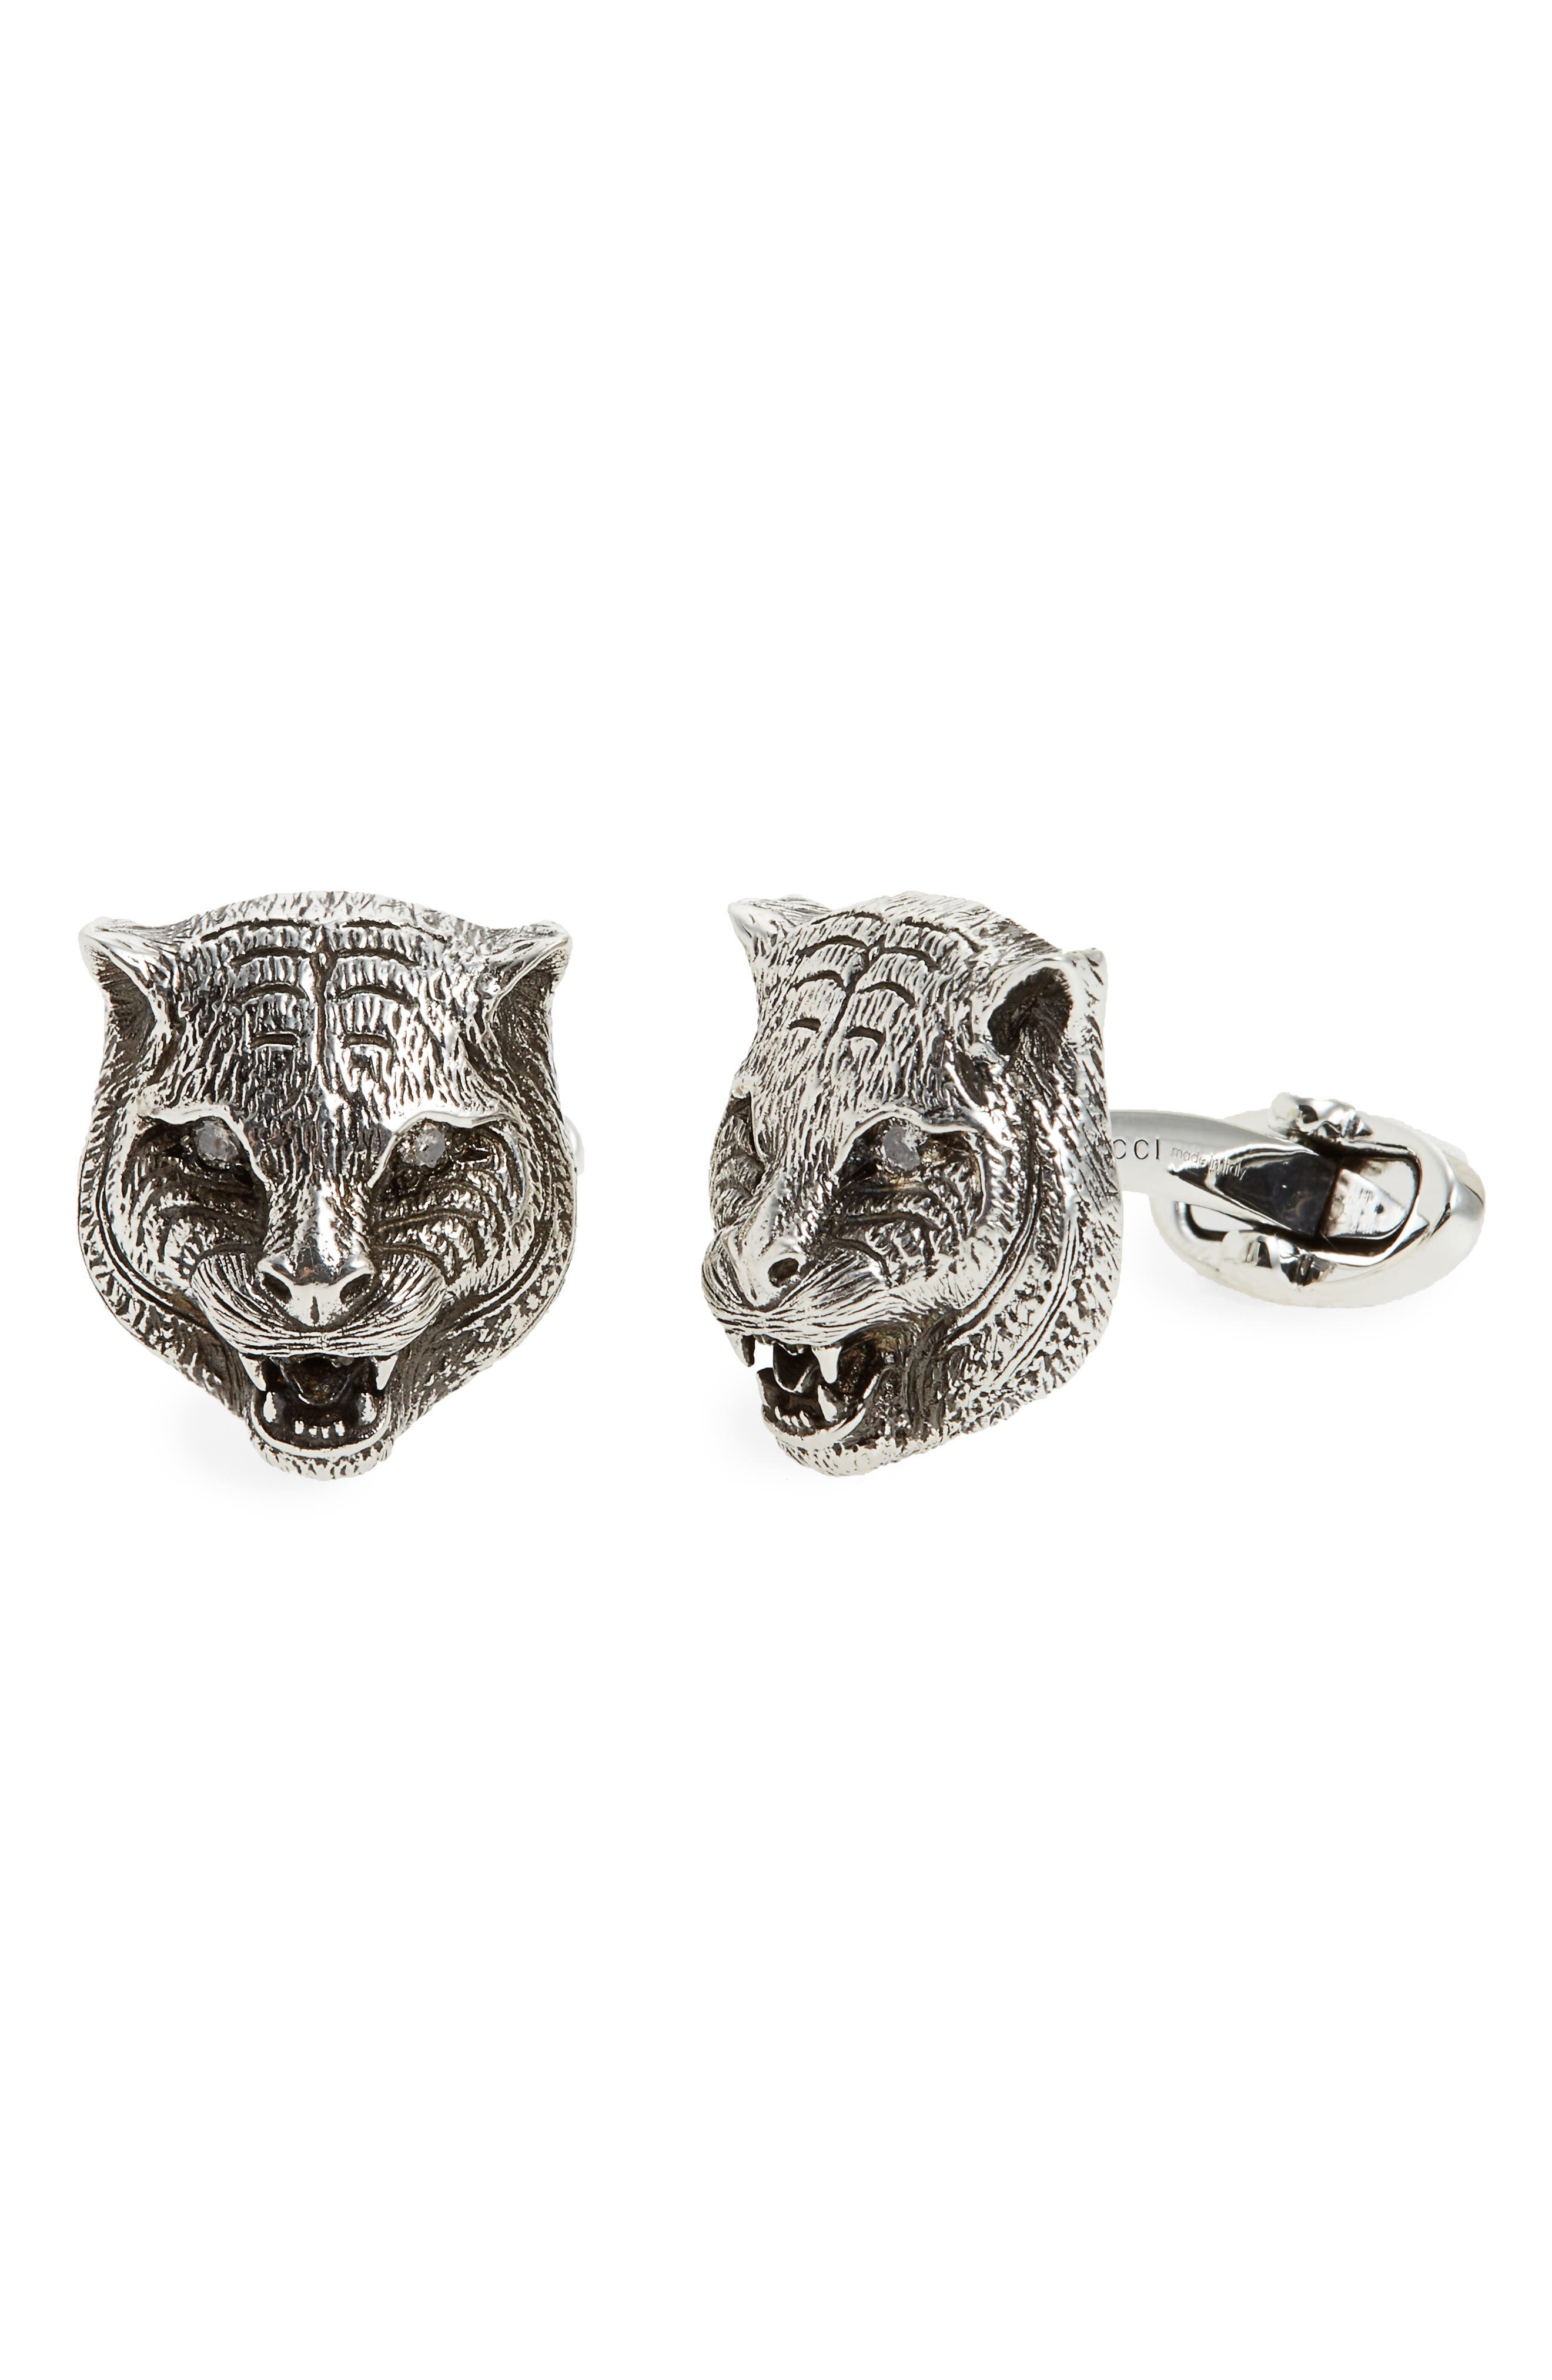 Garden Wolf Cuff Links,                             Main thumbnail 1, color,                             070